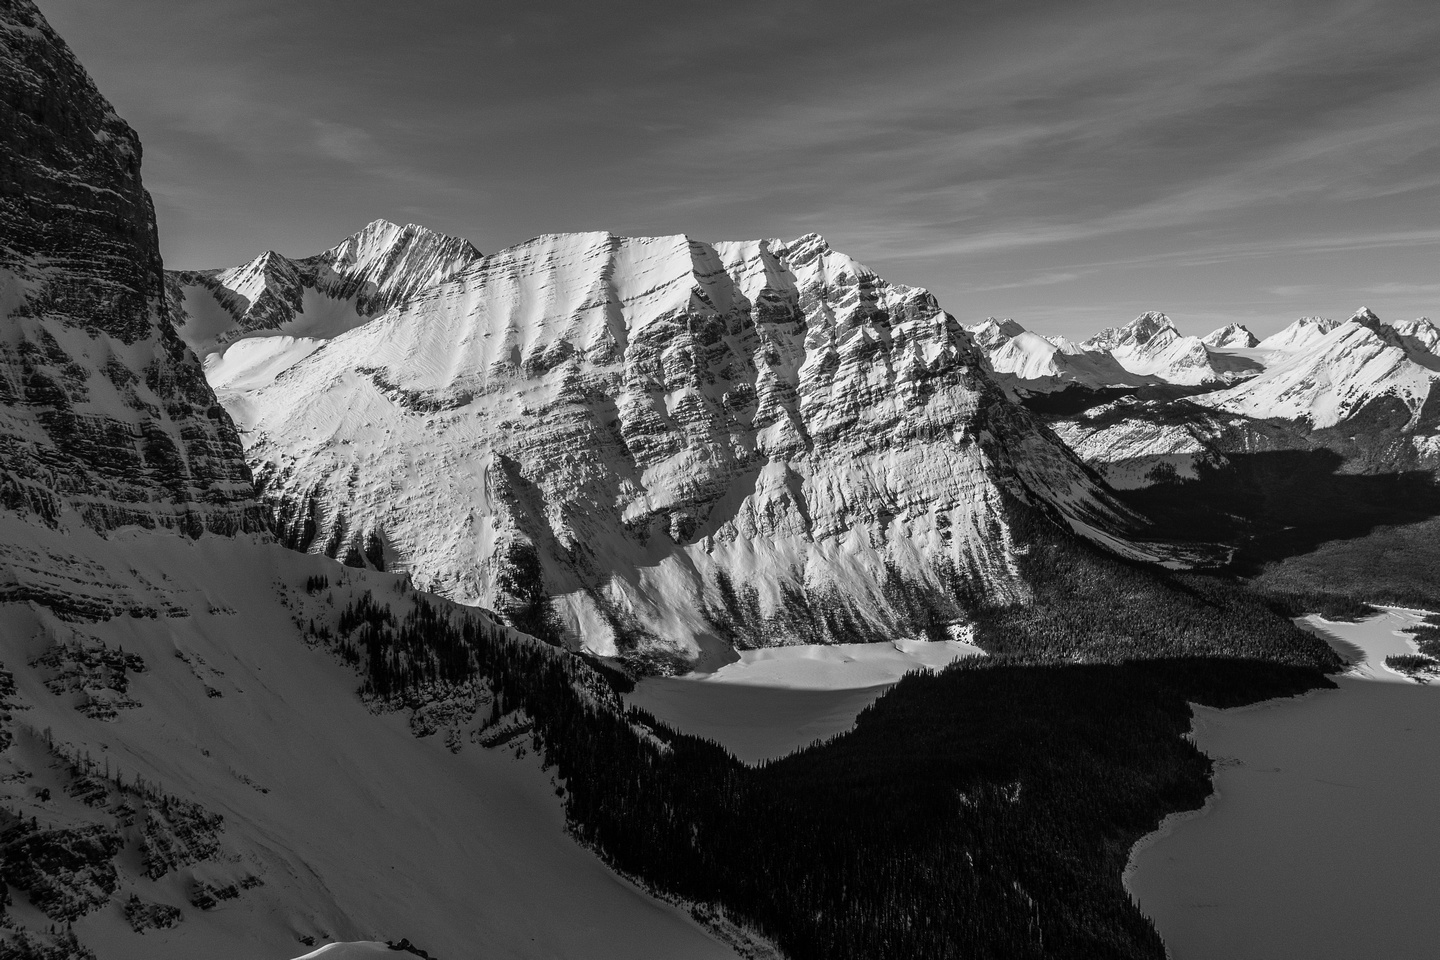 An outlier of Mount Lyautey rises steeply above Hidden Lake - the access to the Aster Lake region goes past this lake.